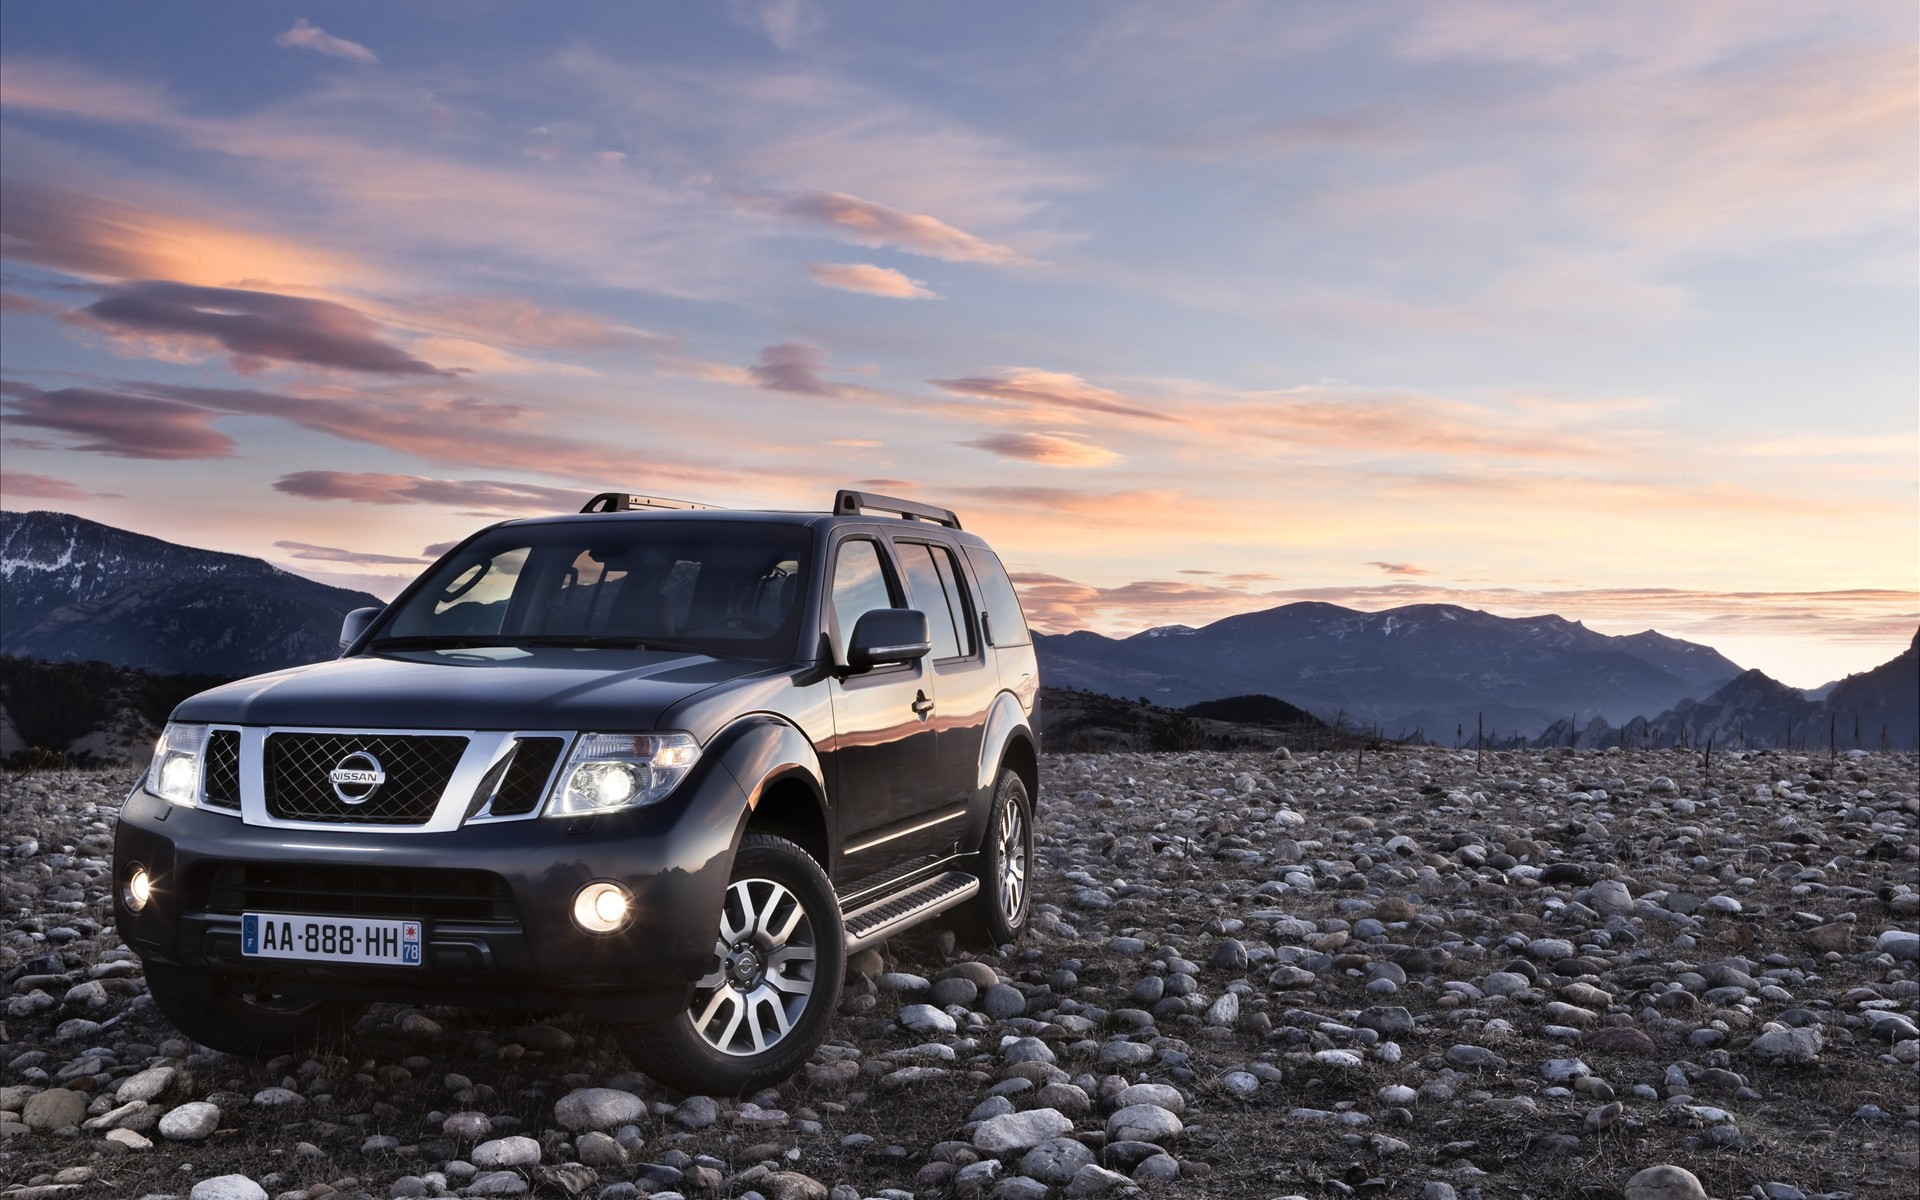 2011 Nissan Pathfinder and Navara 379.17 Kb